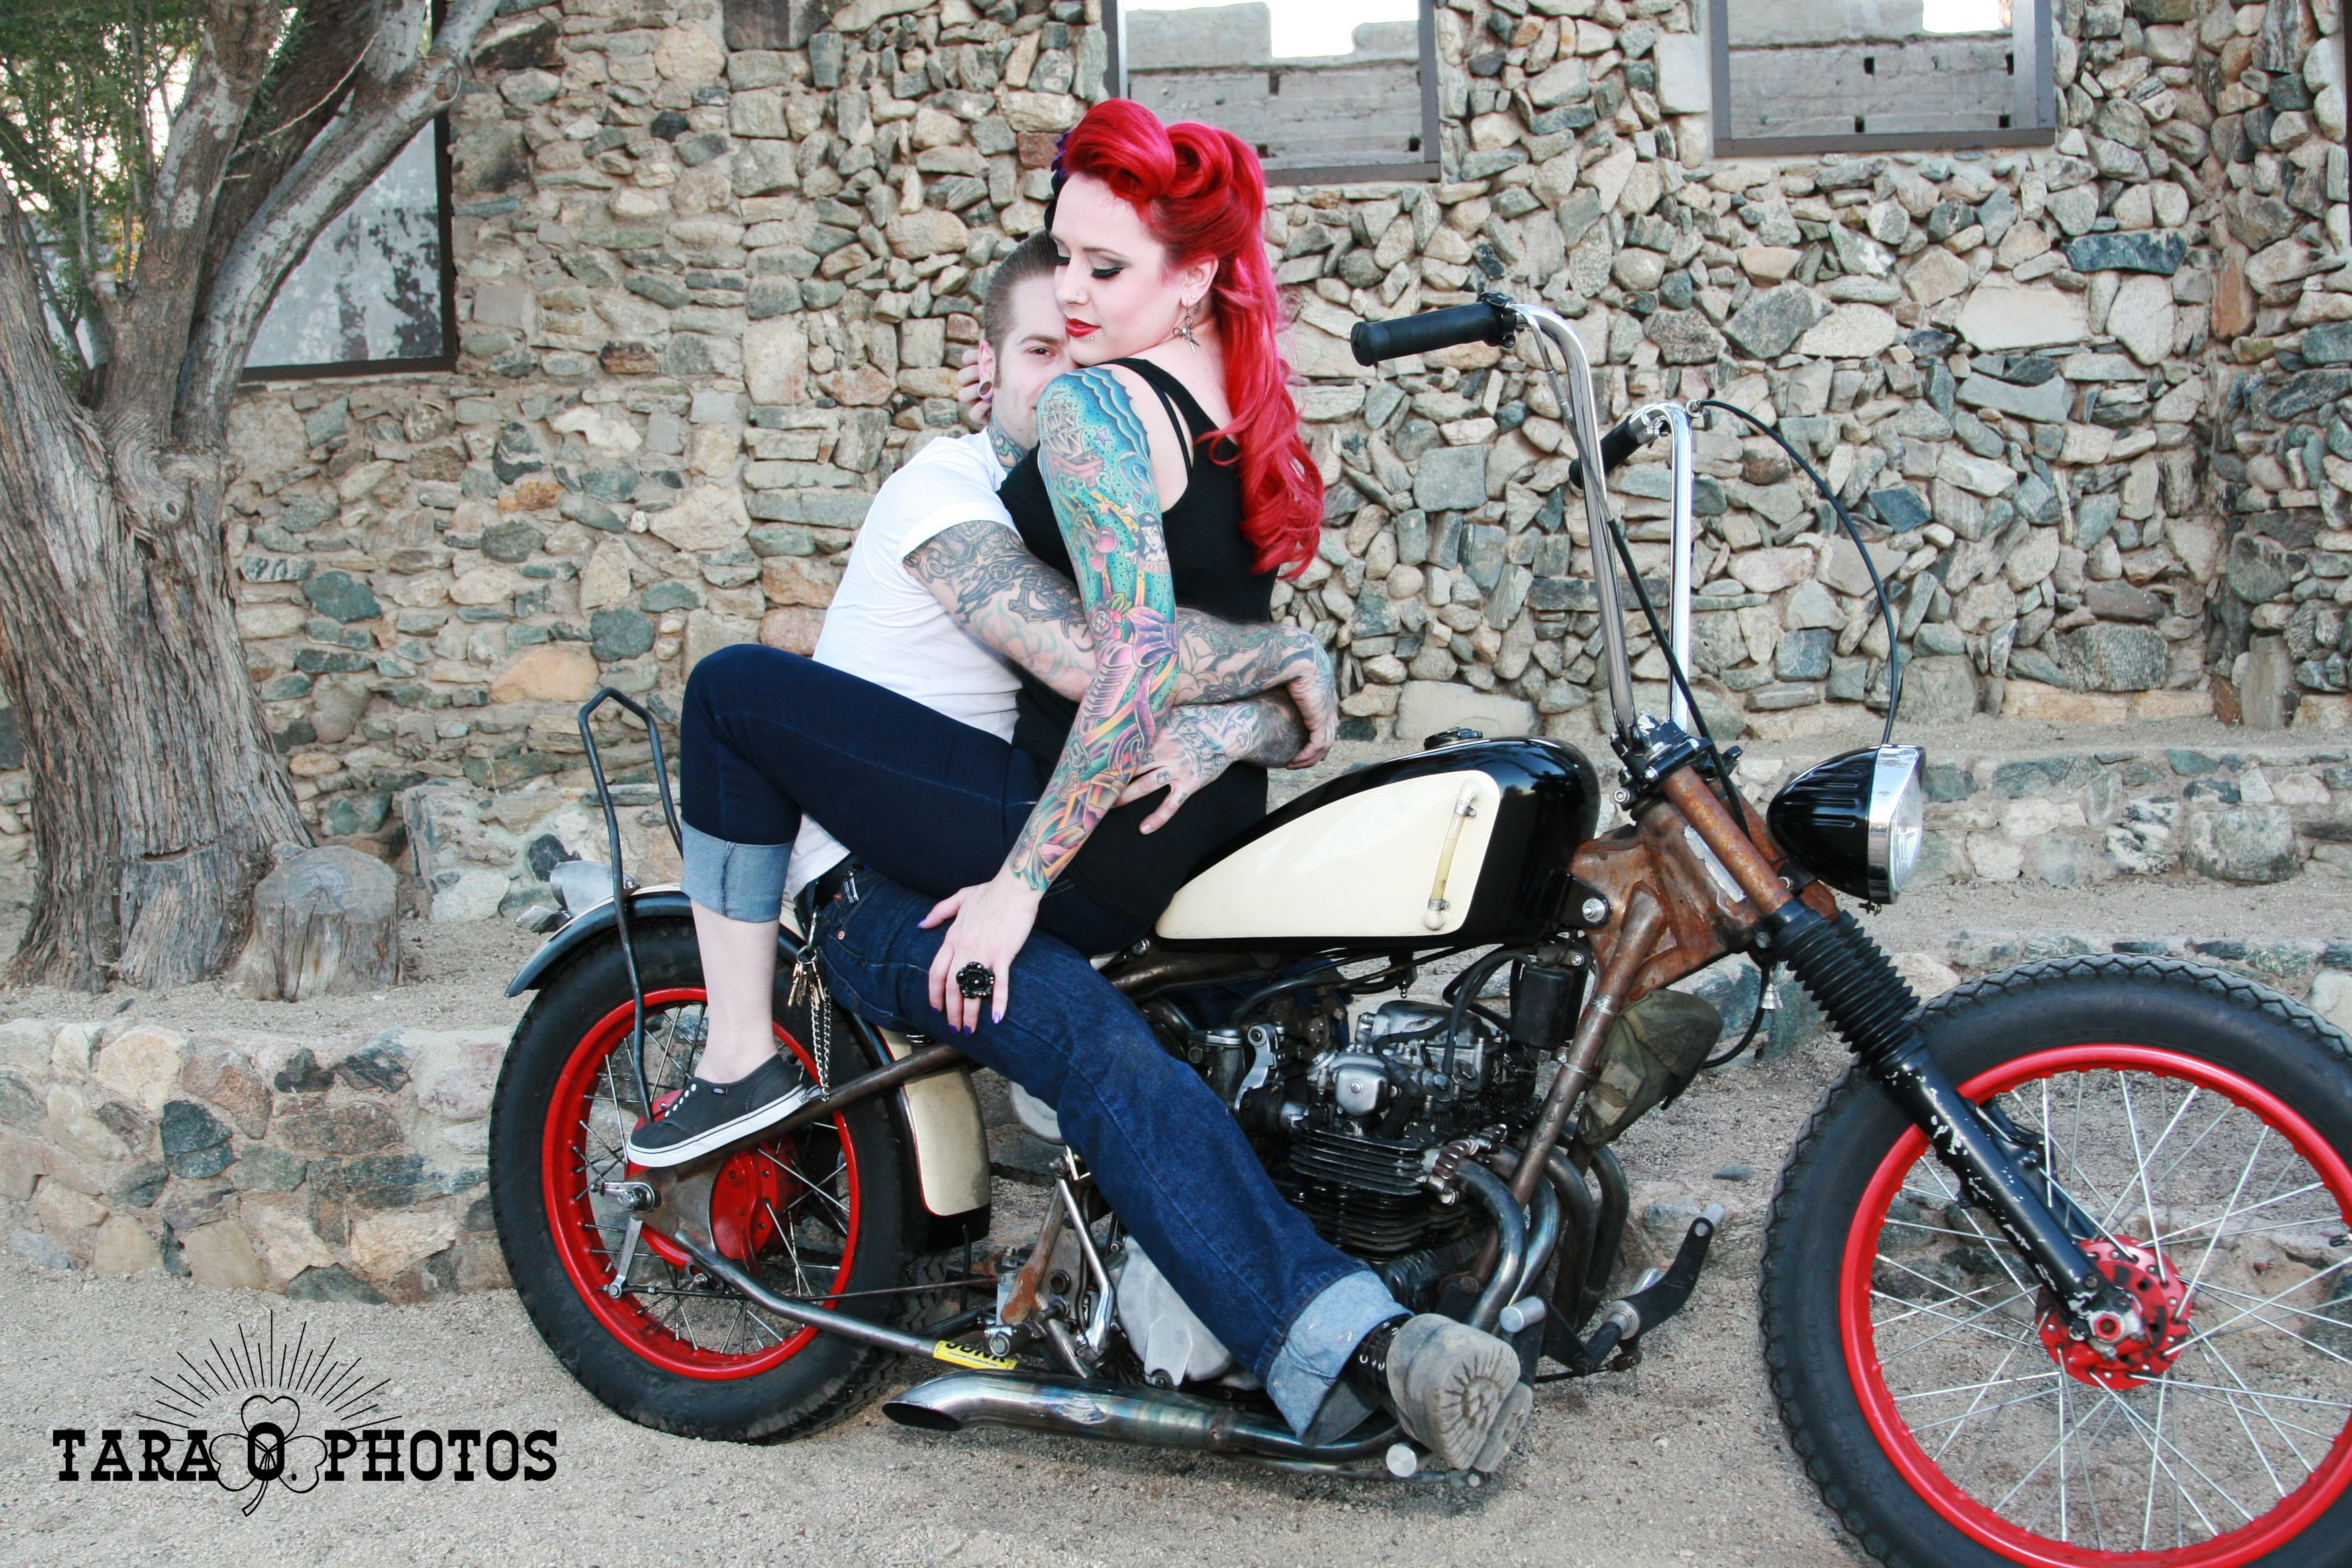 engagement retro tattoo pin up motorcycle photo shoot idea love the colors photo shoot ideas. Black Bedroom Furniture Sets. Home Design Ideas